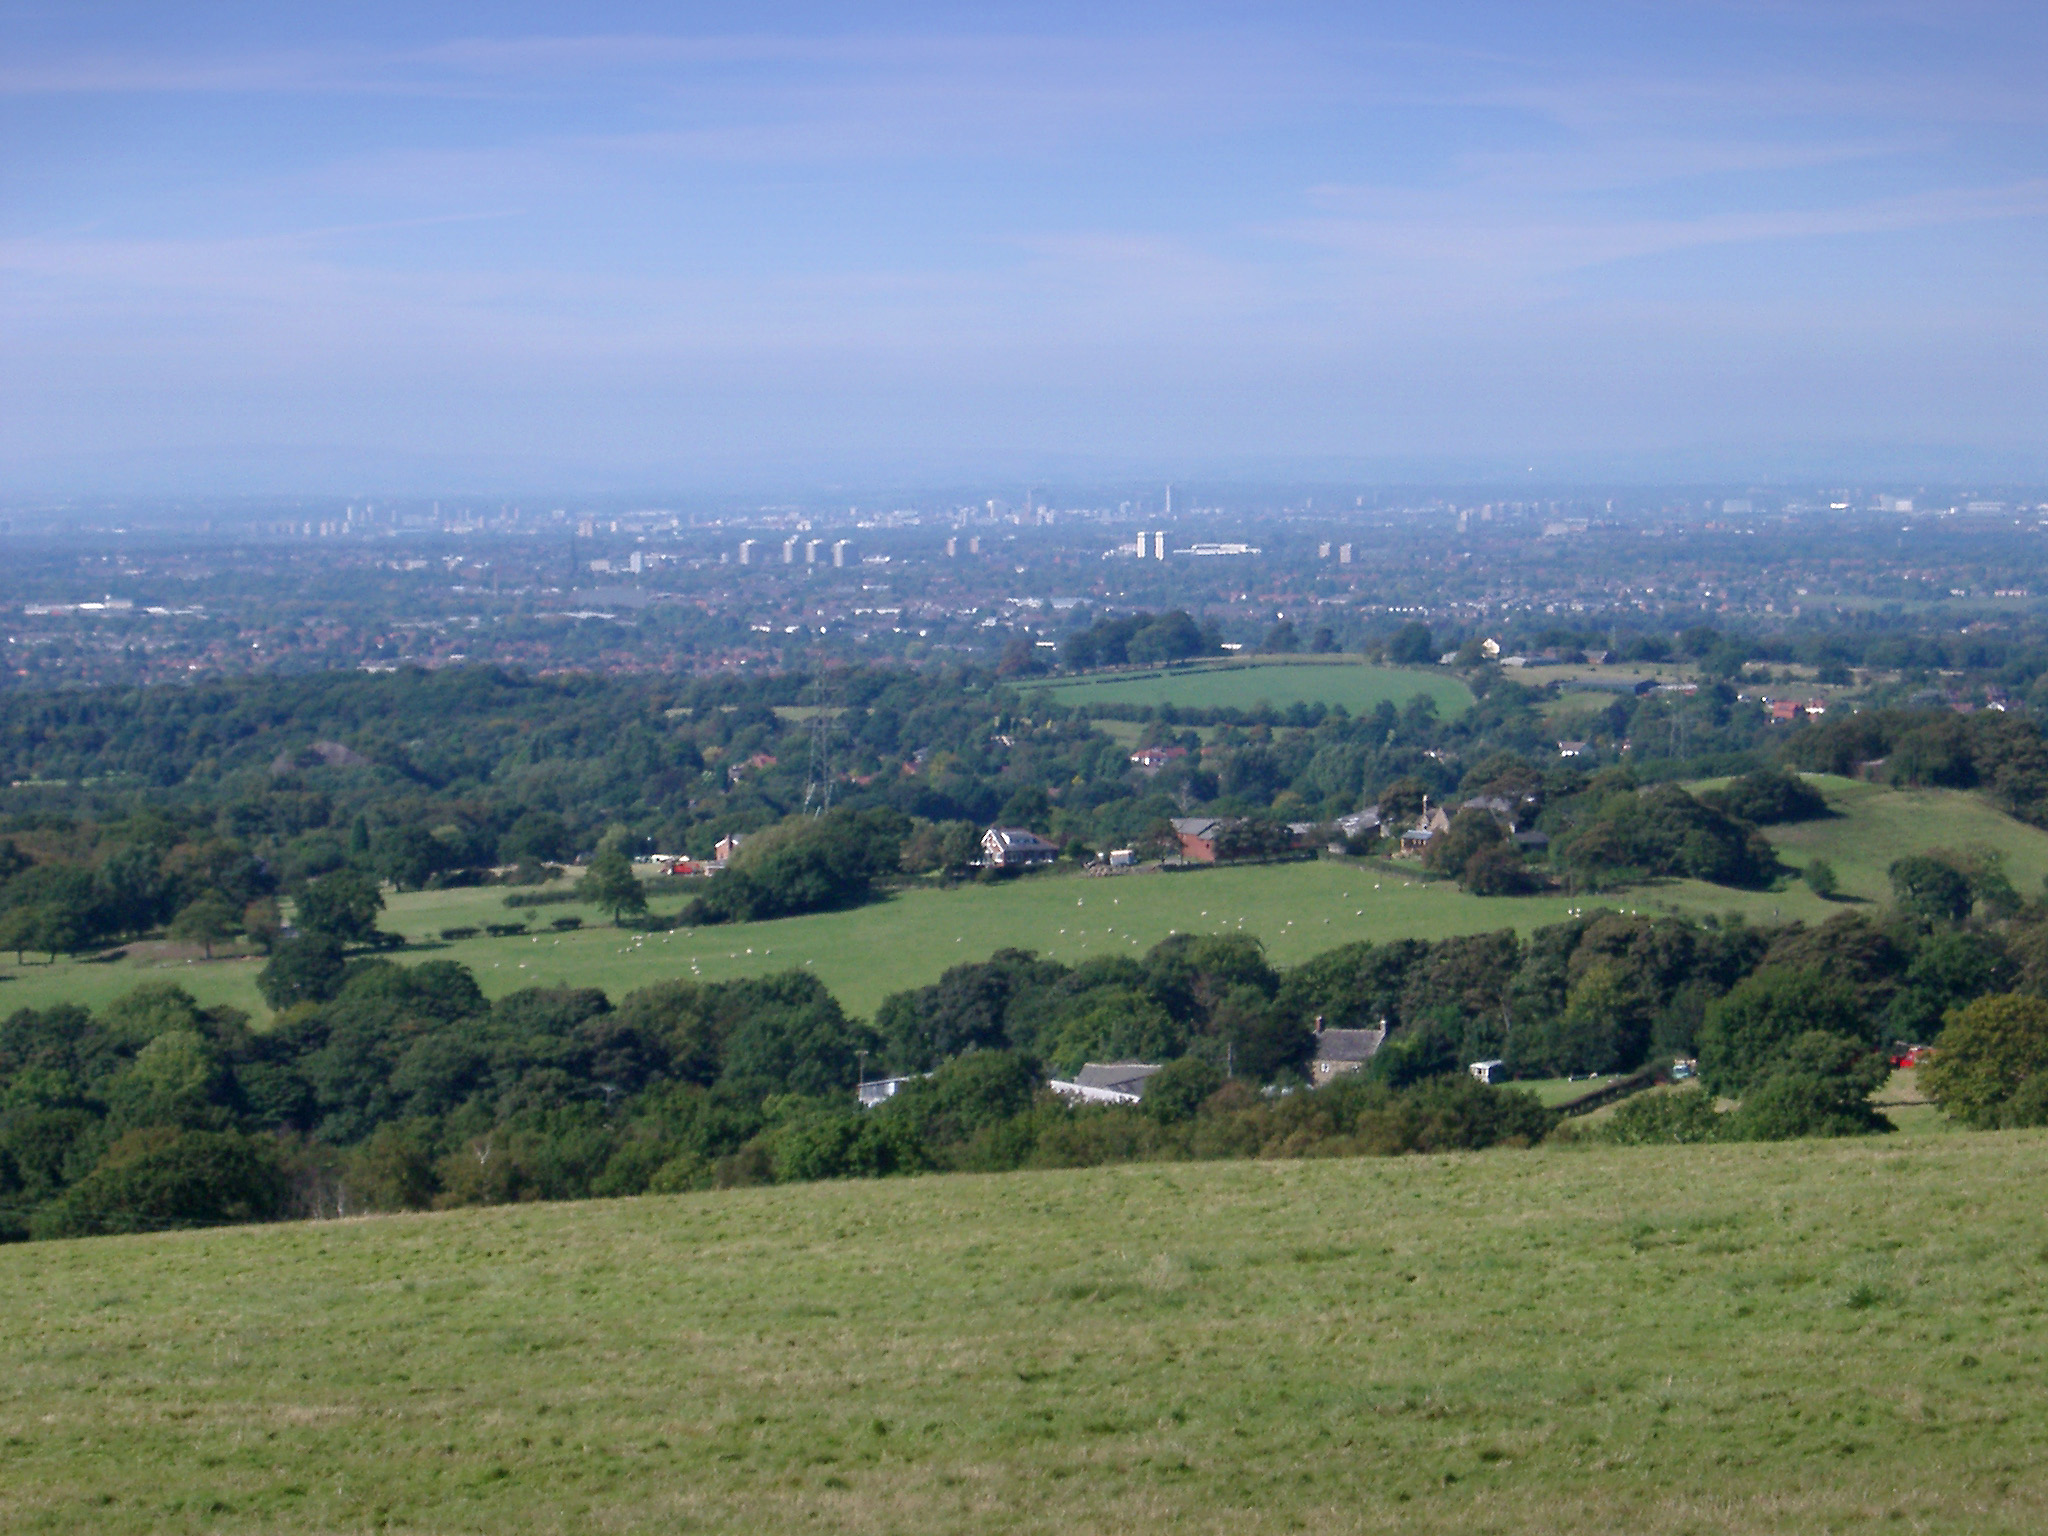 Lush English countryside looking towards the city of Manchester in the distance with the view encompassing the whole city